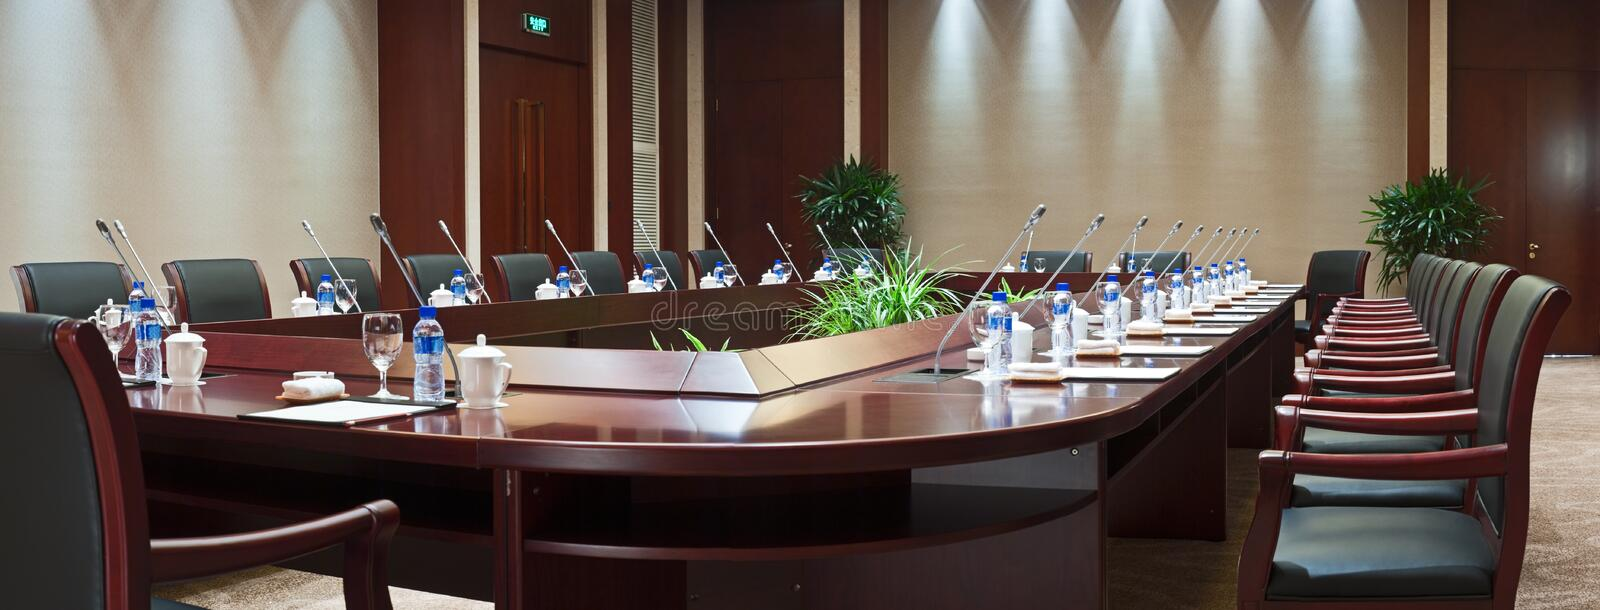 Download Large Conference Room In Hotel Stock Photo - Image: 13843230